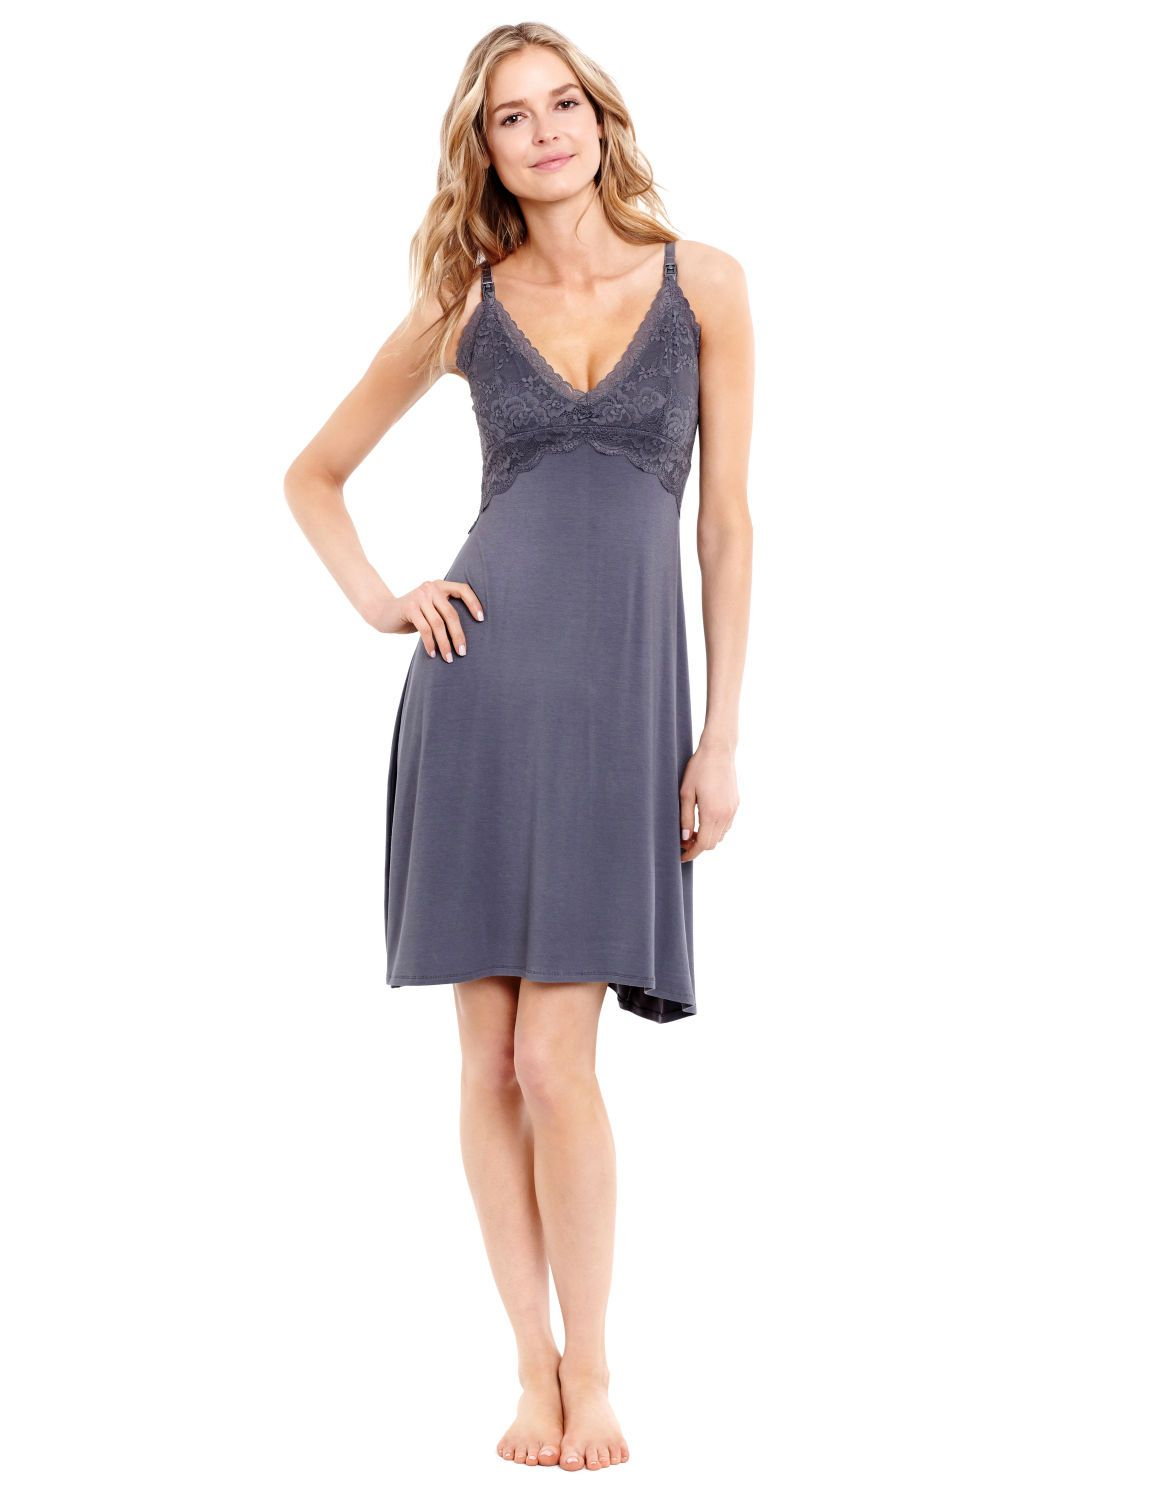 da600762187 Sleep pretty | lace nursing nightgown by Jessica Simpson available at Destination  Maternity